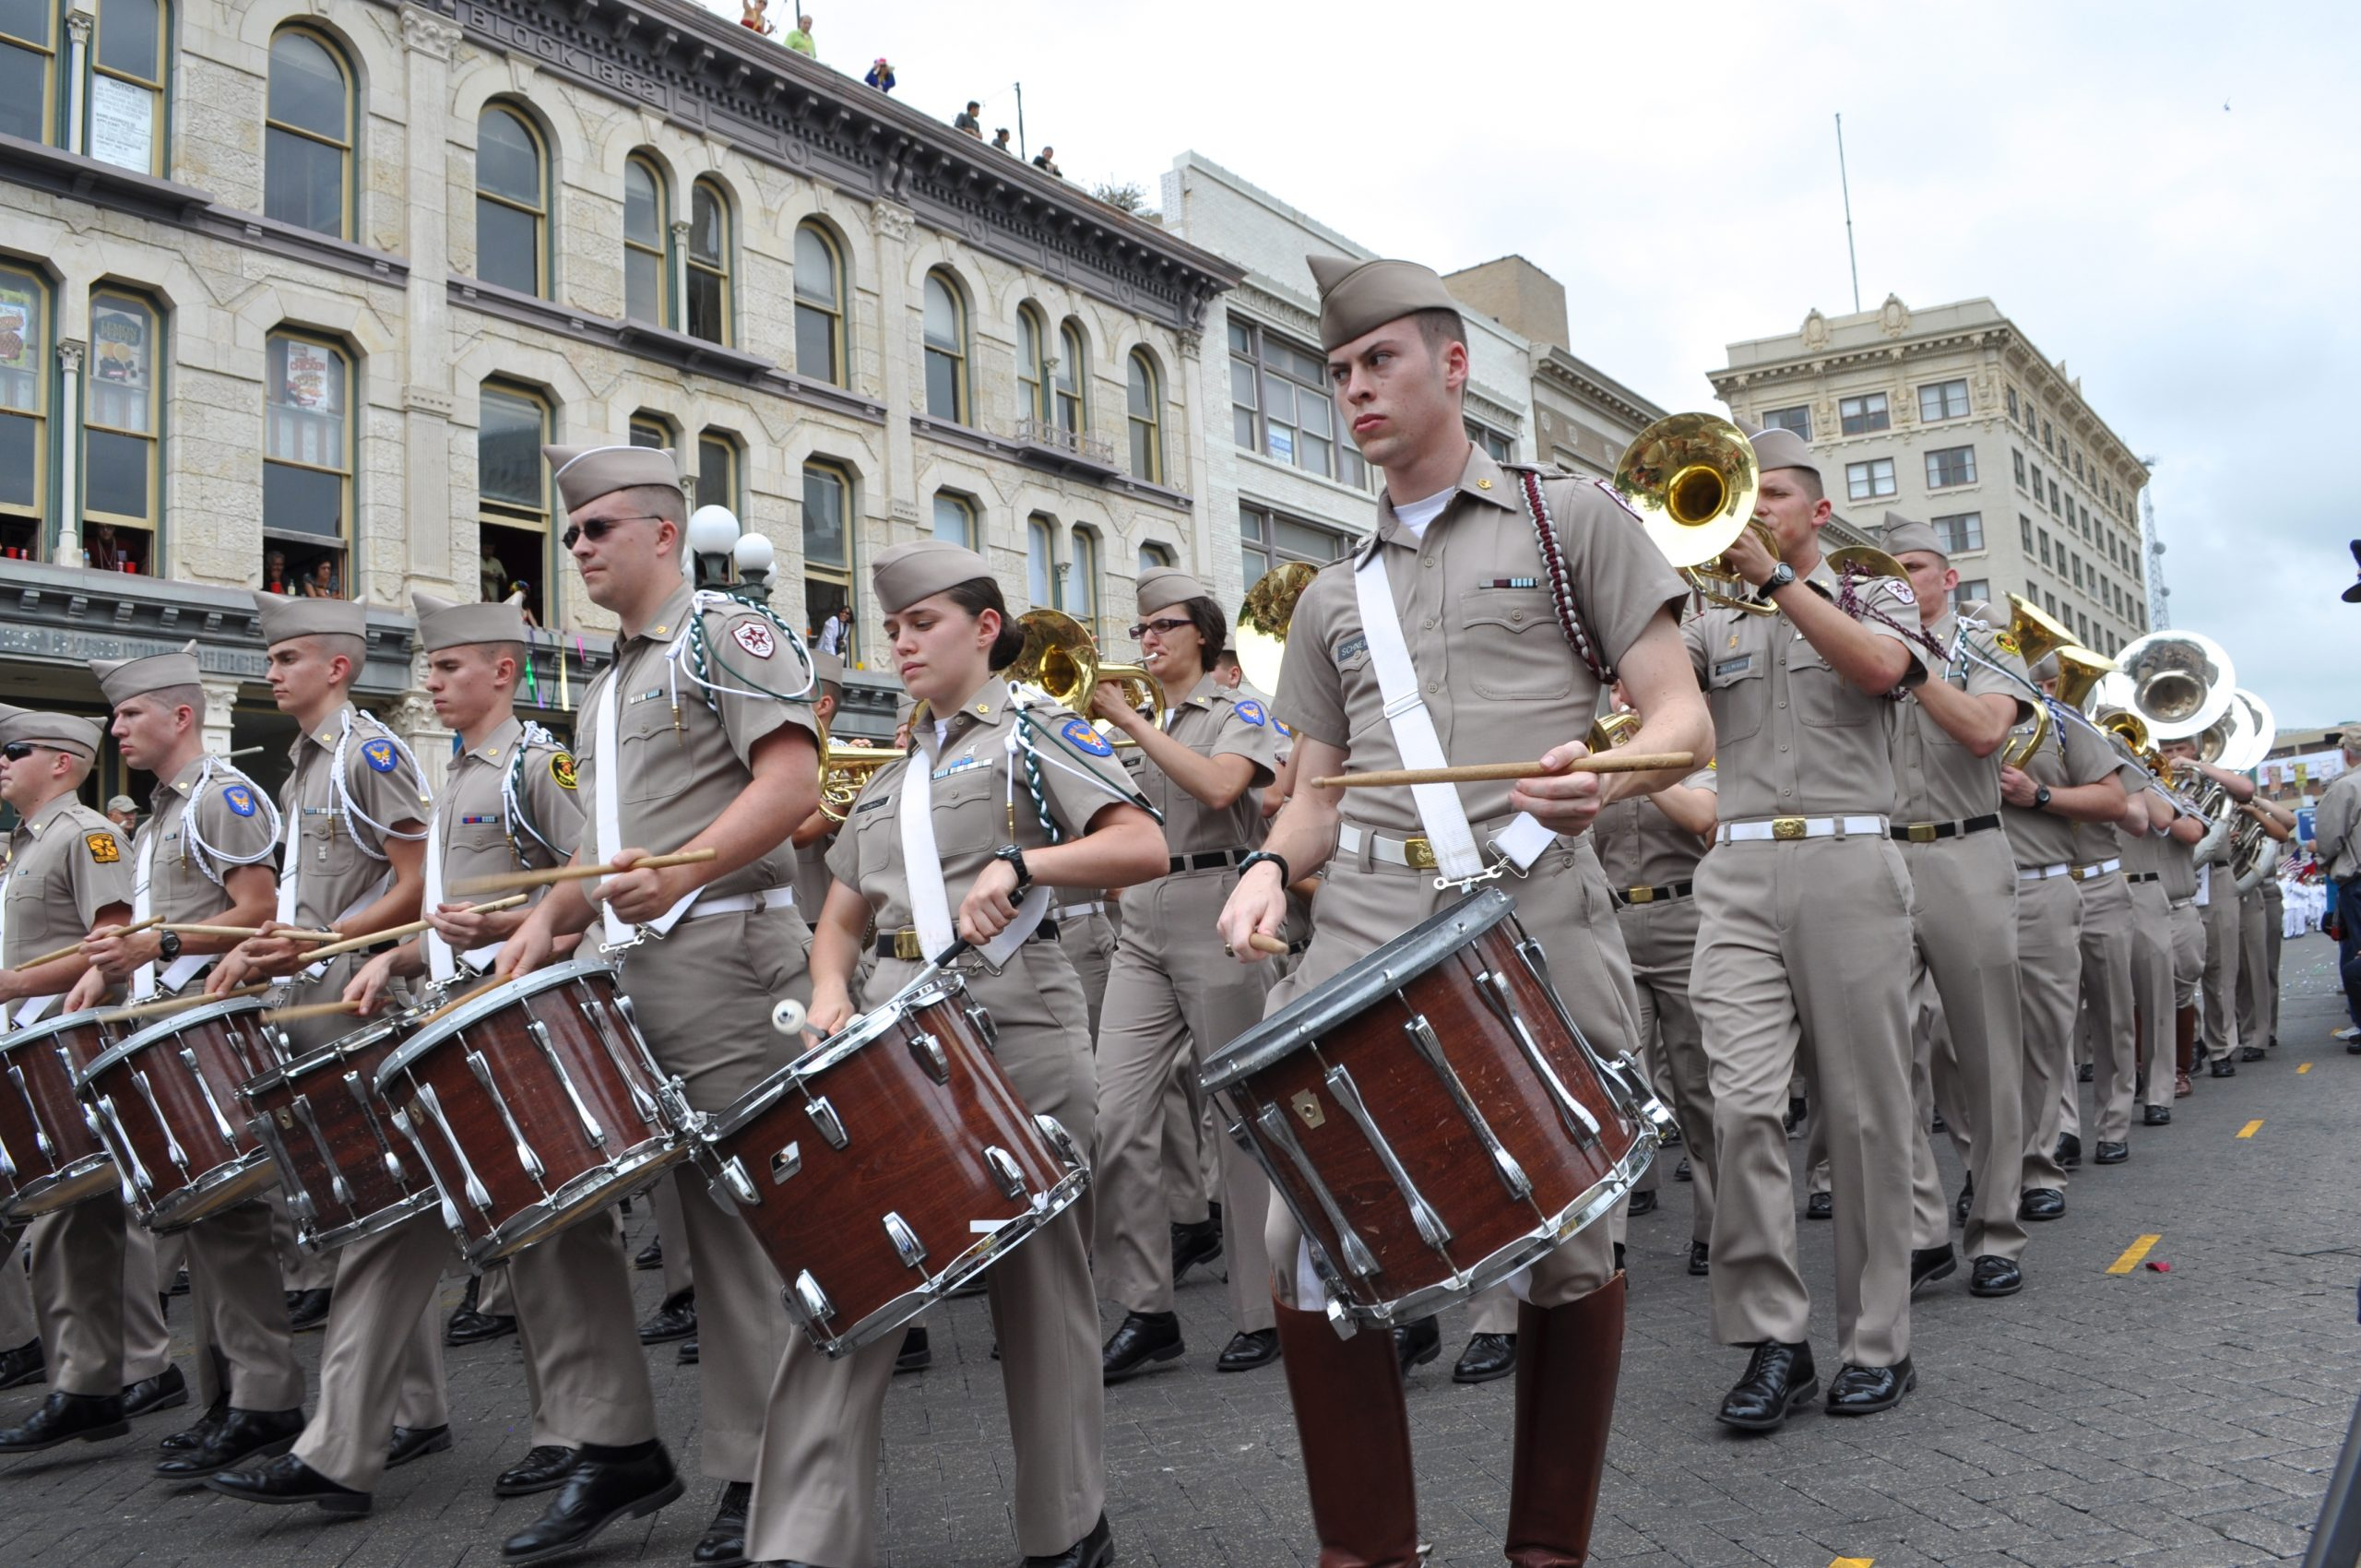 A marching band performs during the Battle of the Flowers Parade (2013). Photo by Iris Dimmick.